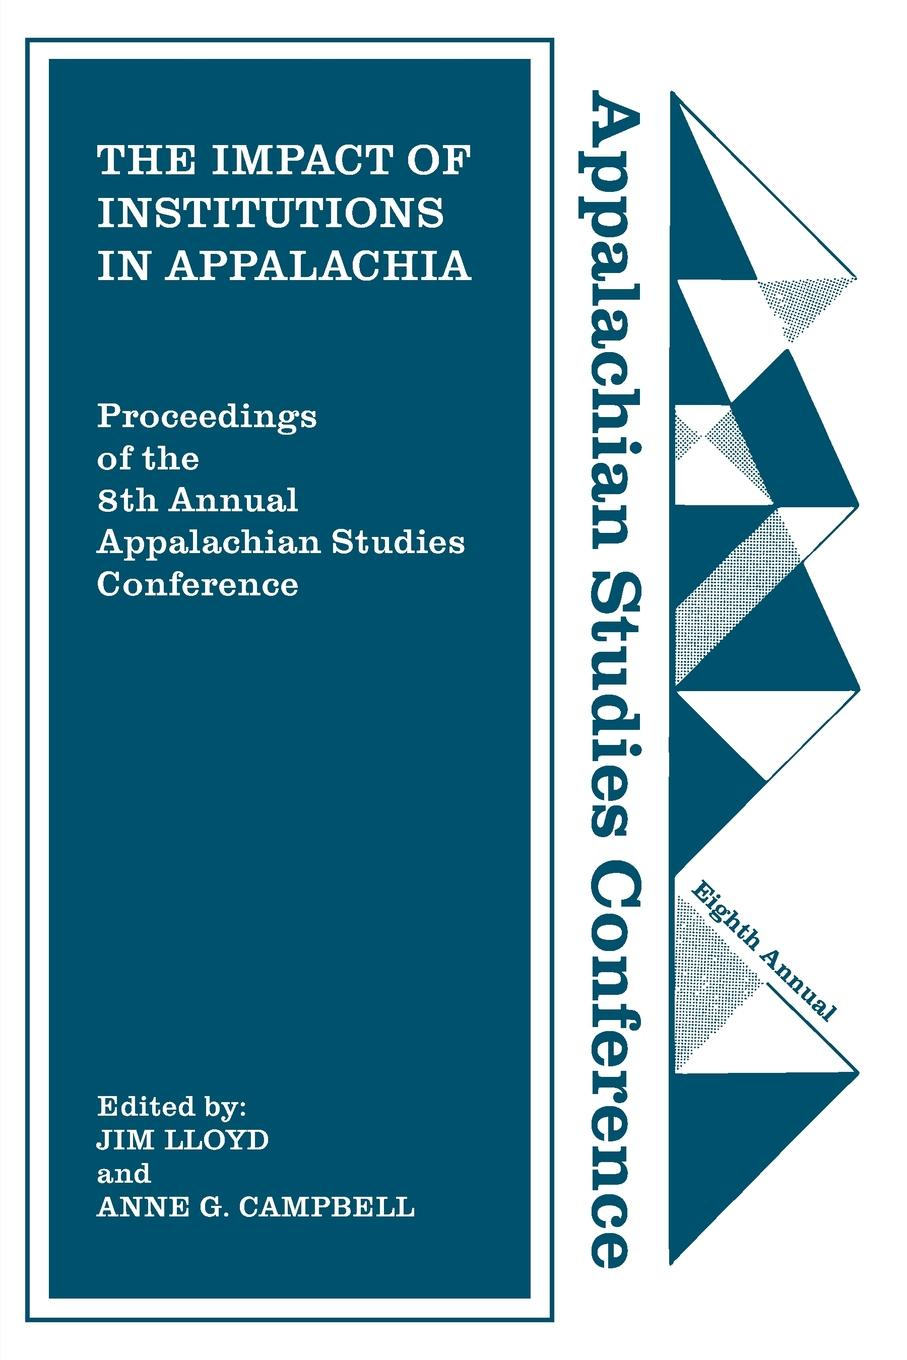 The Impact of Institutions in Appalachia